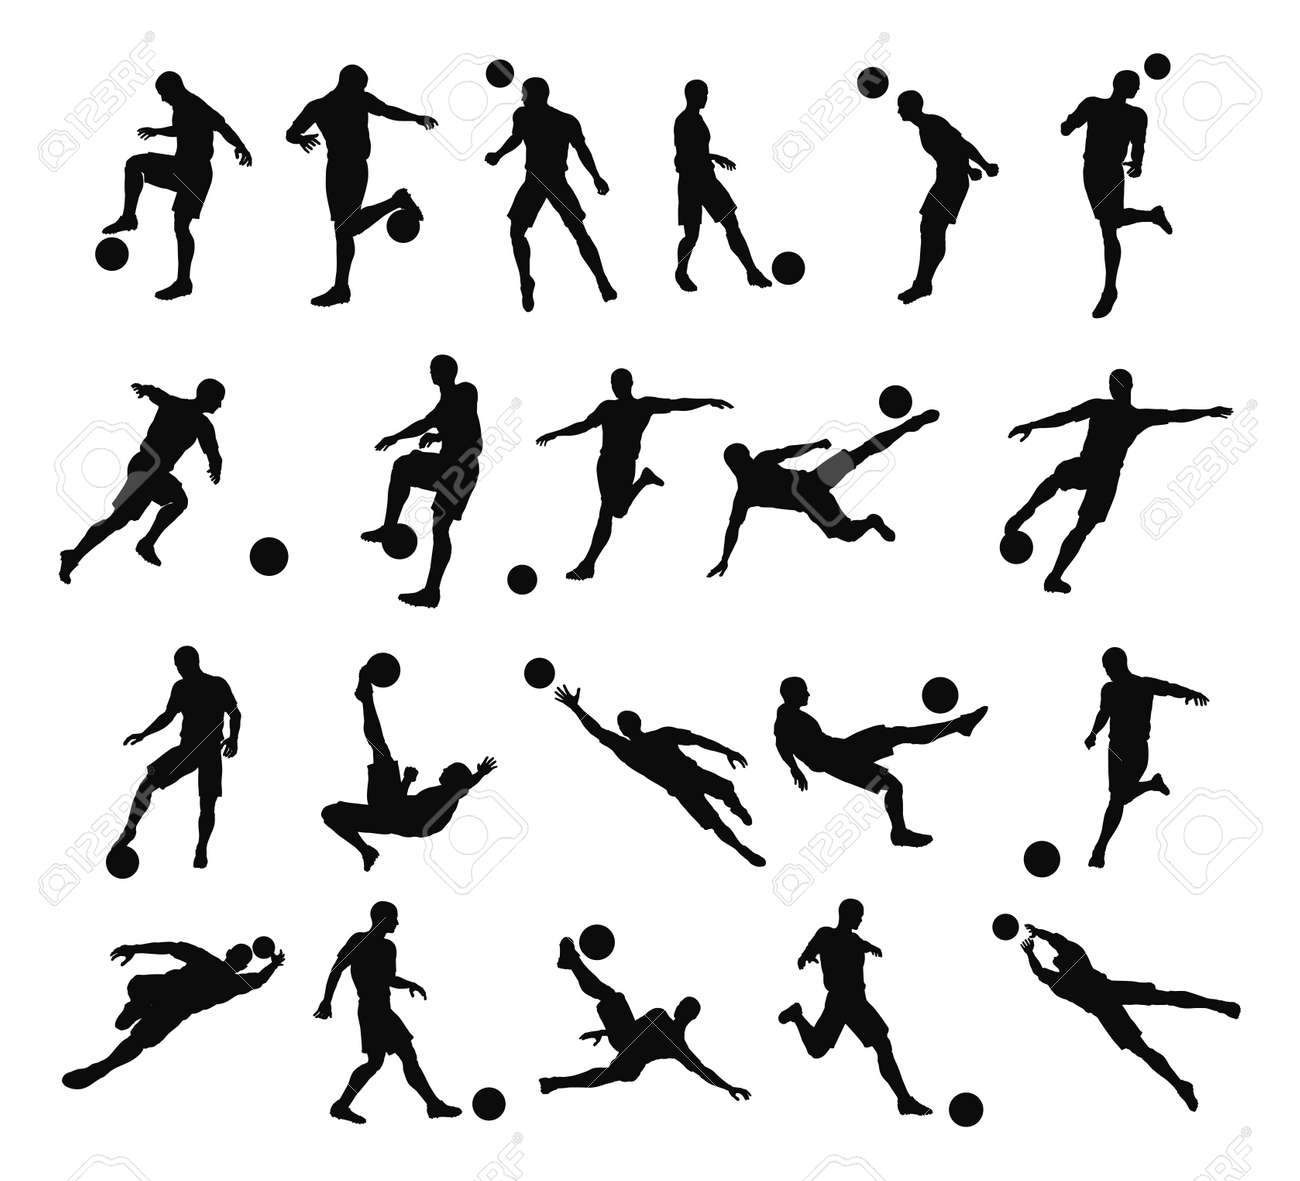 Very high quality detailed soccer football player silhouette outlines. Stock Vector - 10180905